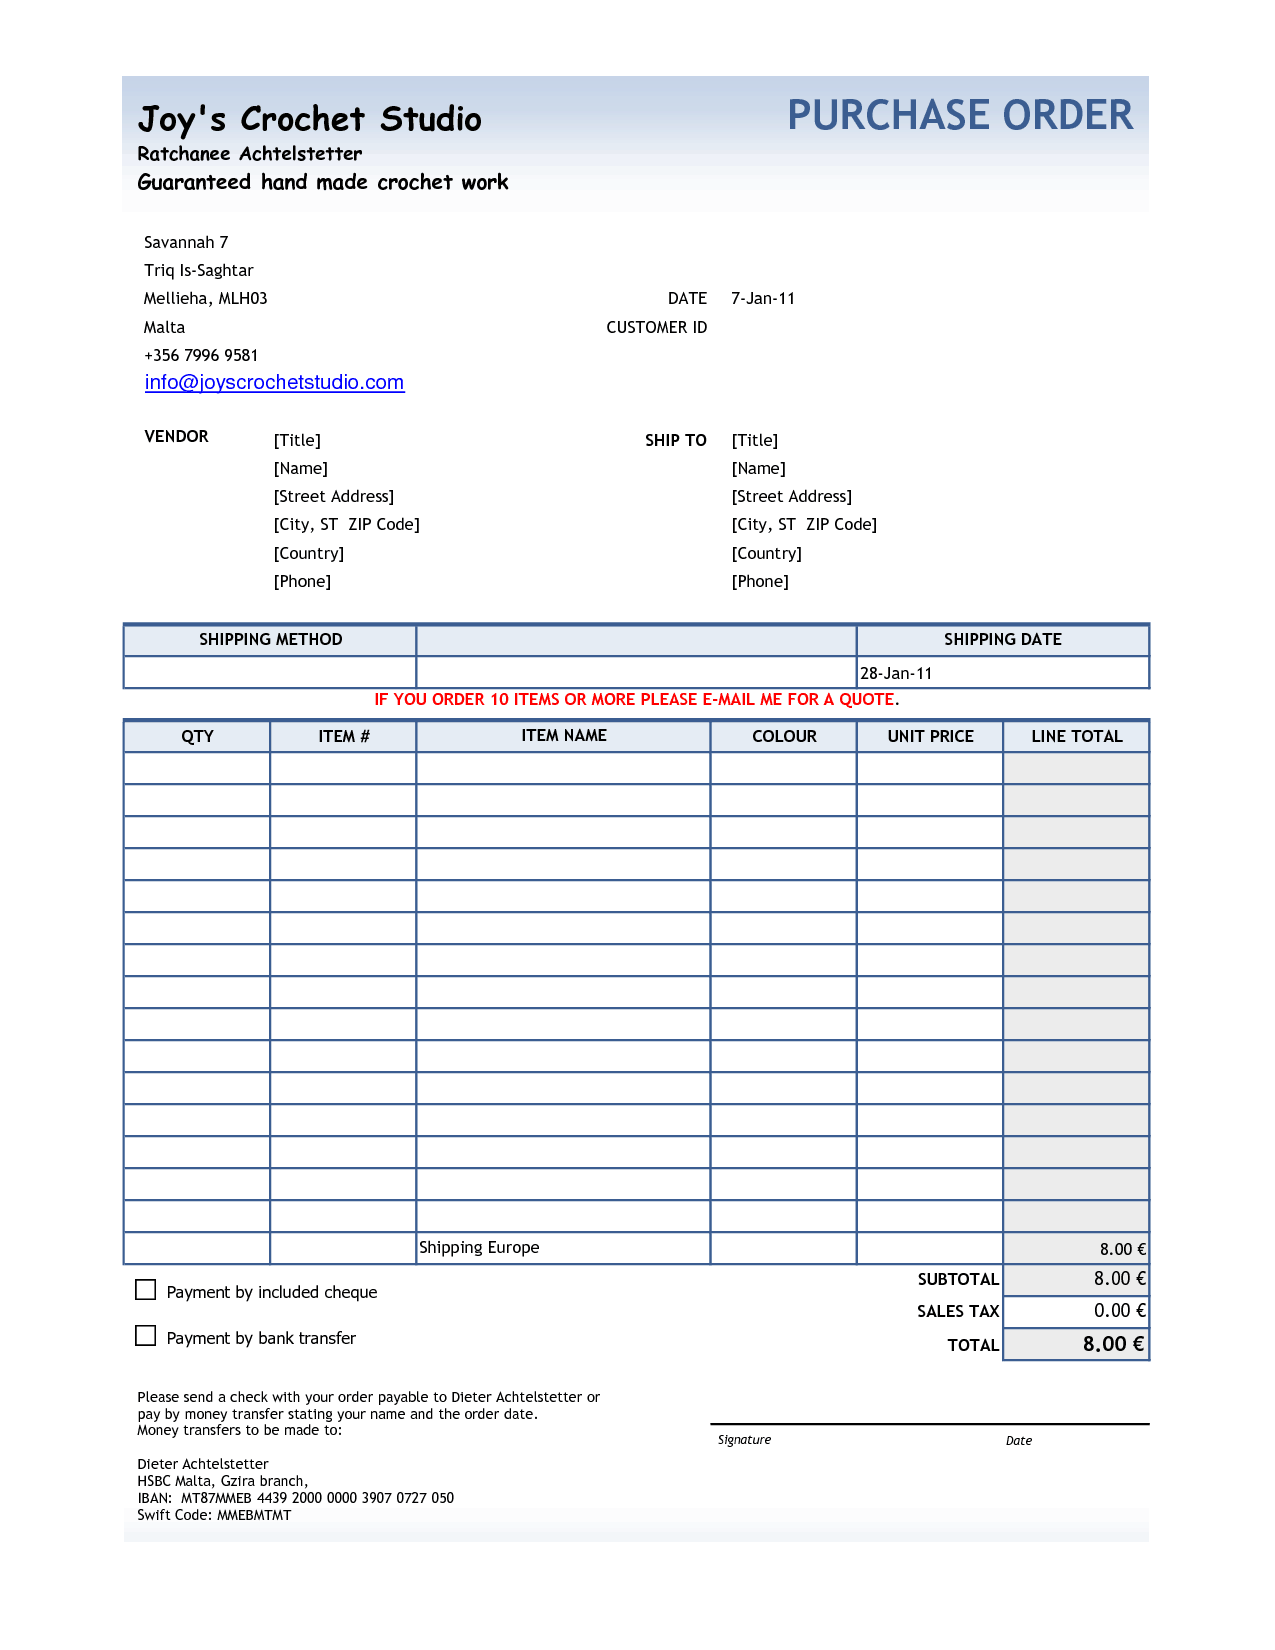 Purchase Order sample 20.13641